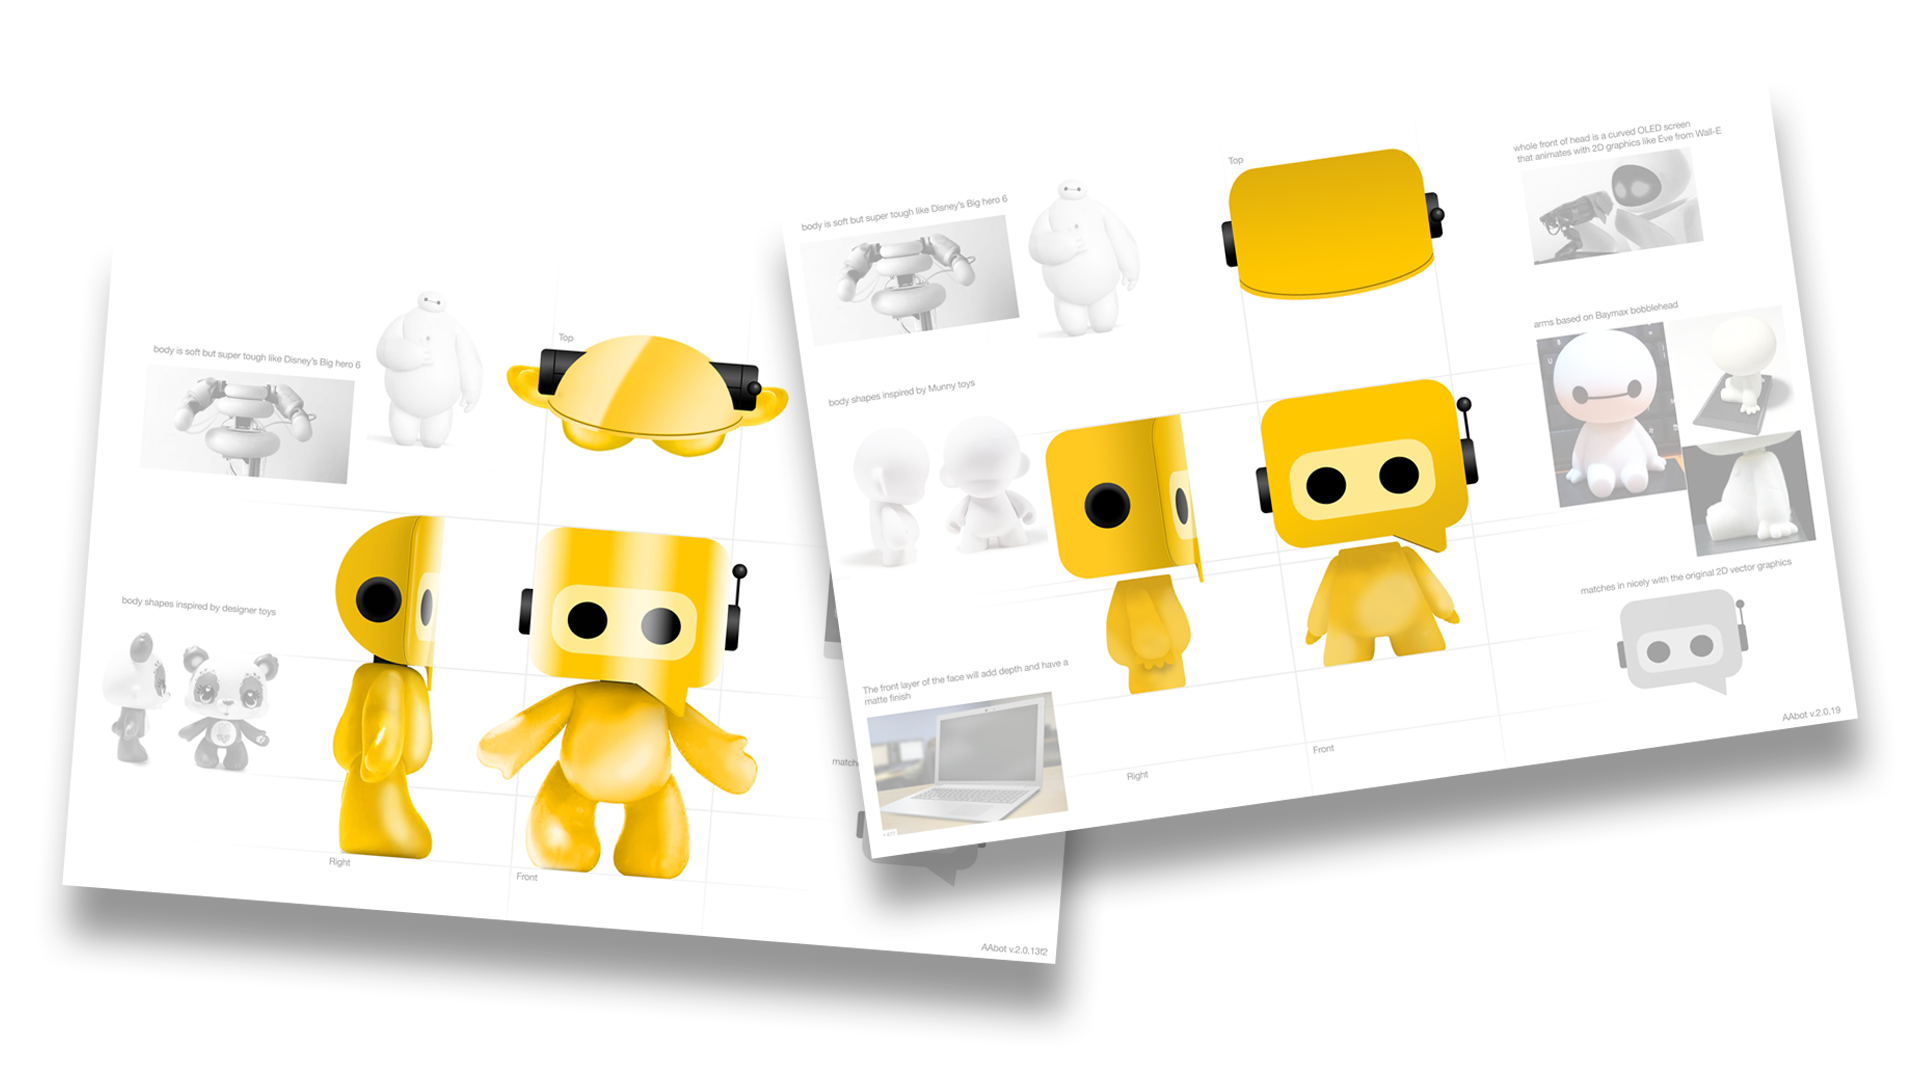 Development of the Bot character from 2D to 3D with body